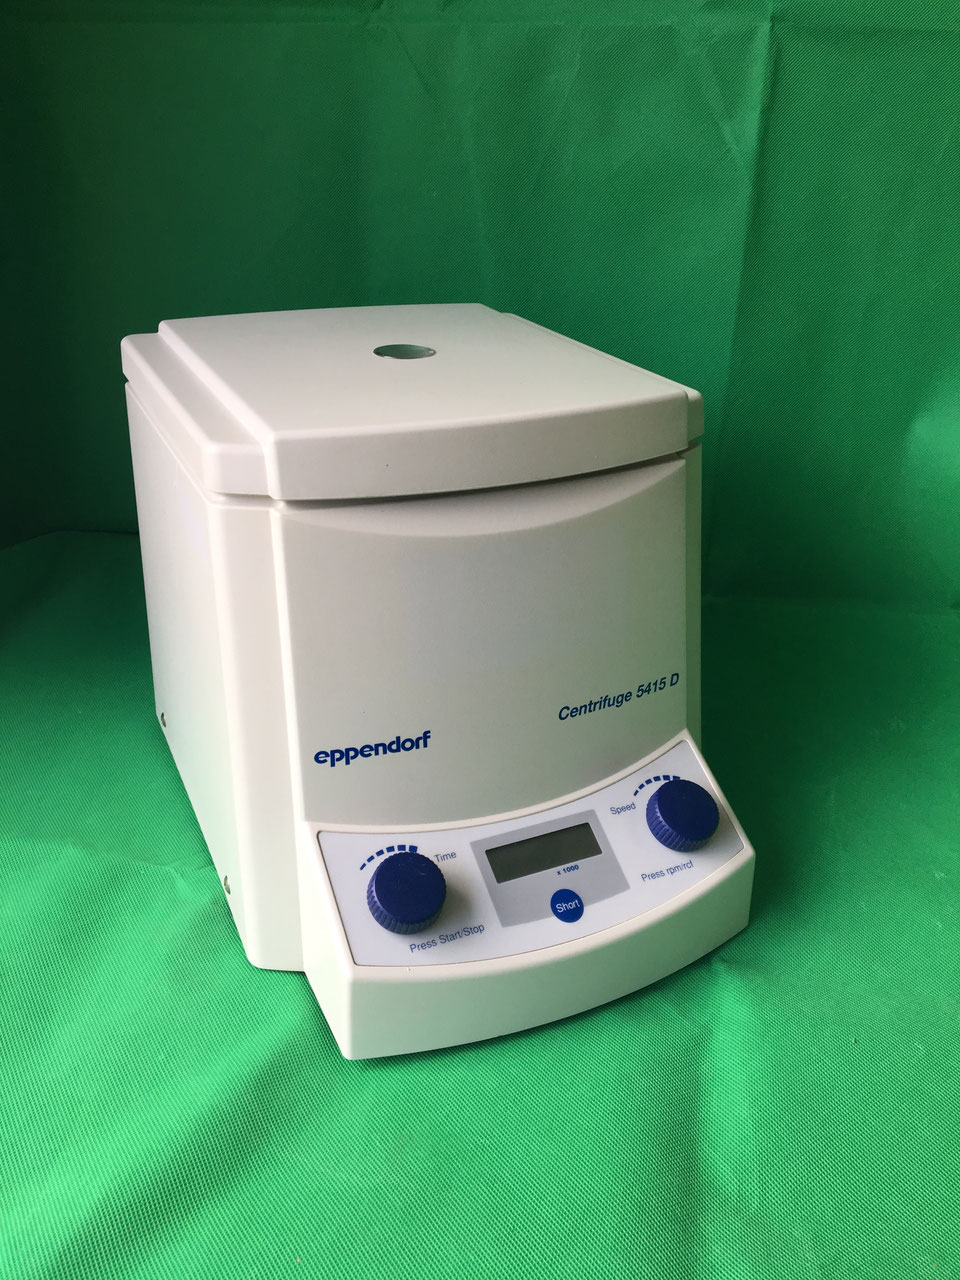 Eppendorf centrifuge 5415d repair manual